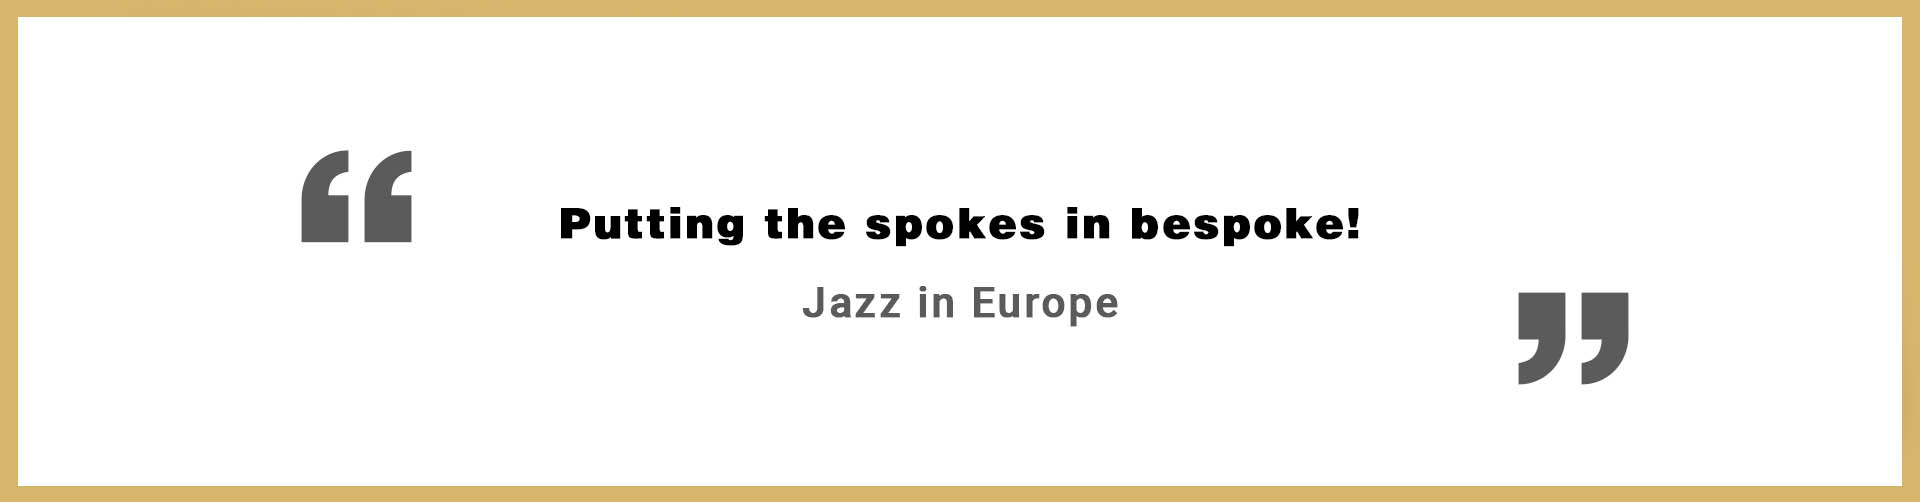 Jazz acts in Europe